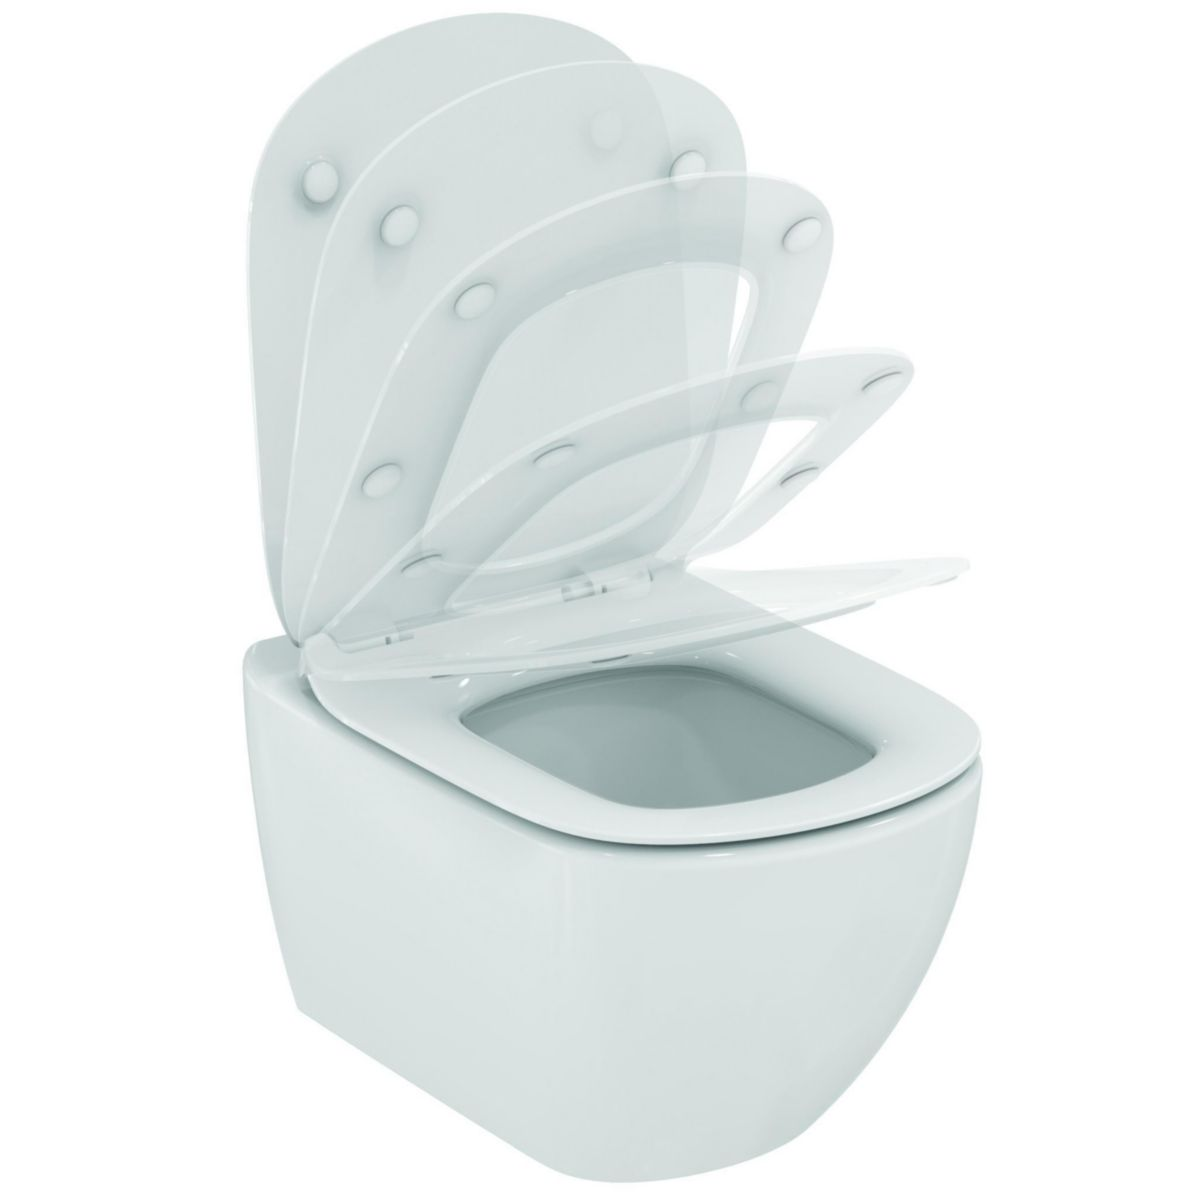 Promo Wc Ideal Standard Pack Wc Suspendu Tesi Aquablade Fixations